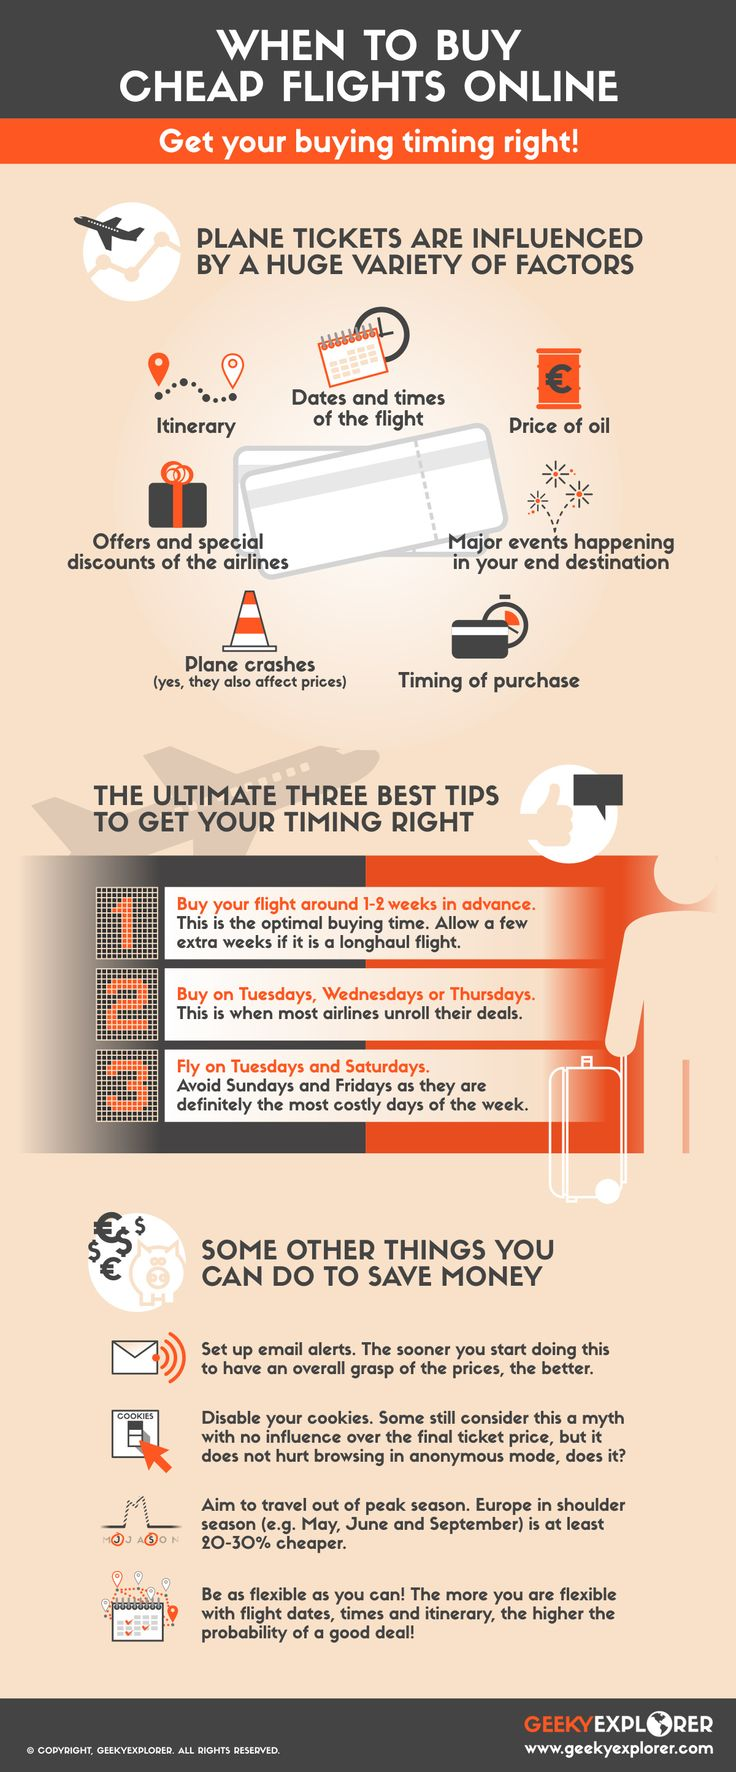 The ultimate tips to save money when buying flights online!